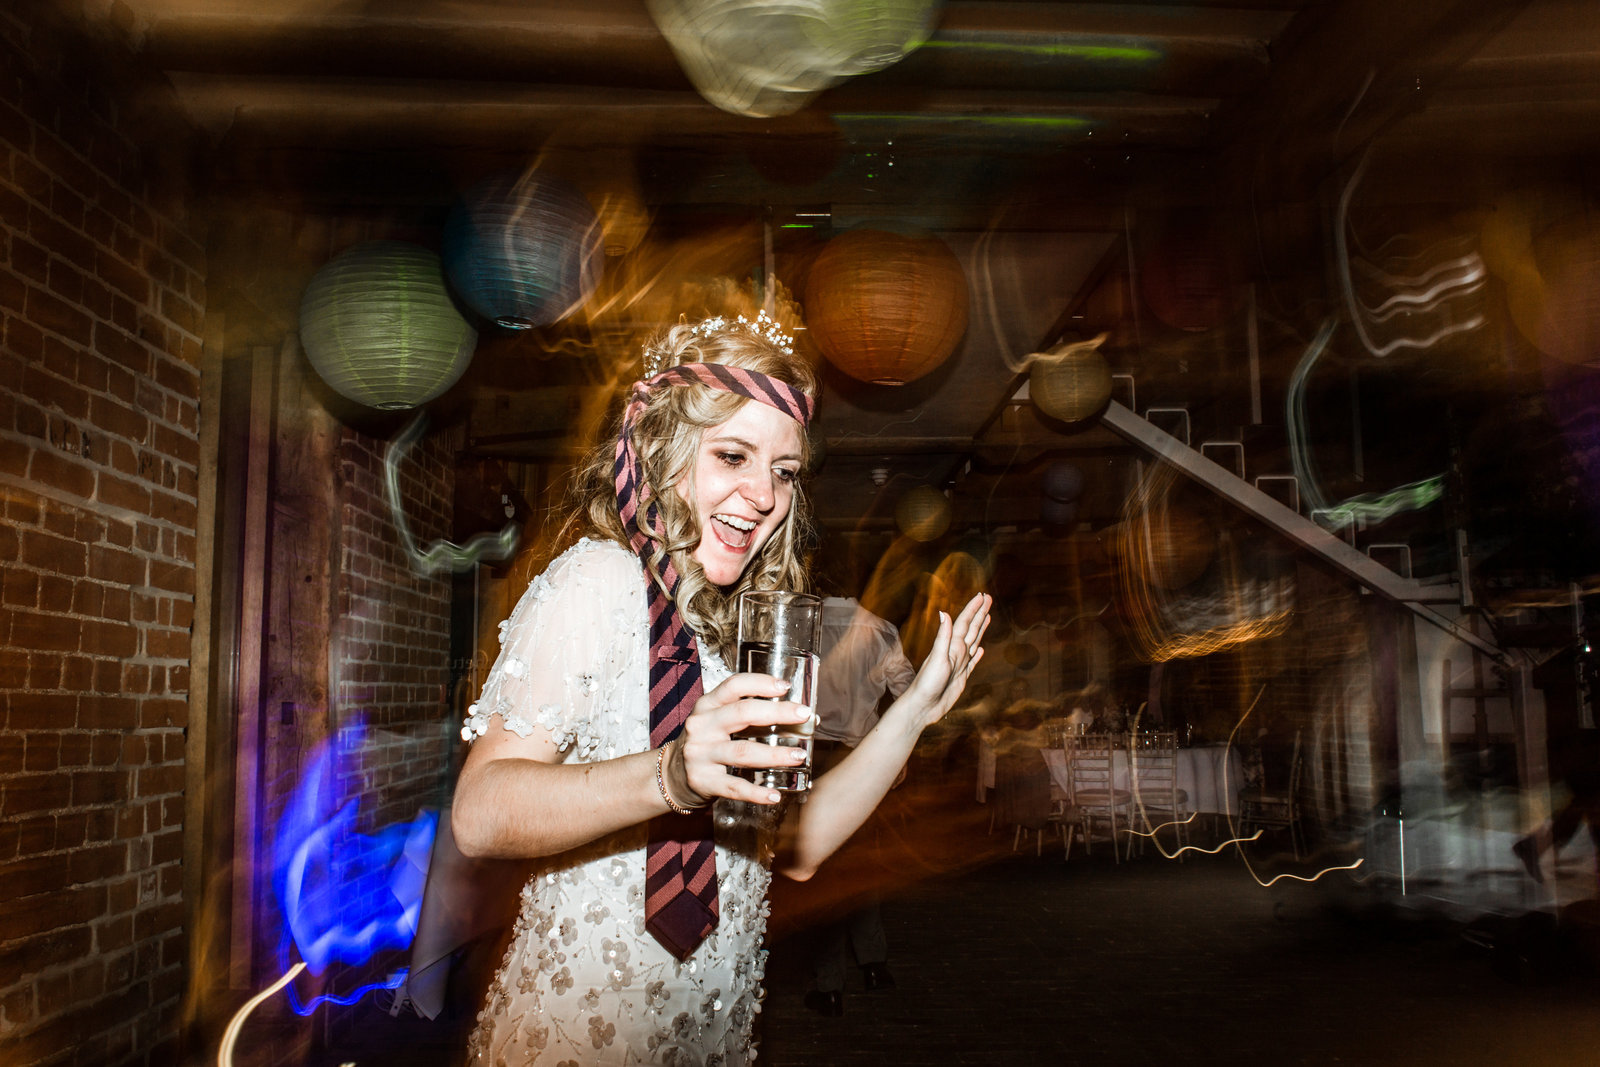 Slightly tipsy Bride dancing on the dance floor with a suit tie wrapped around her head and a beer in her hand at a barn wedding venue in Norfolk.